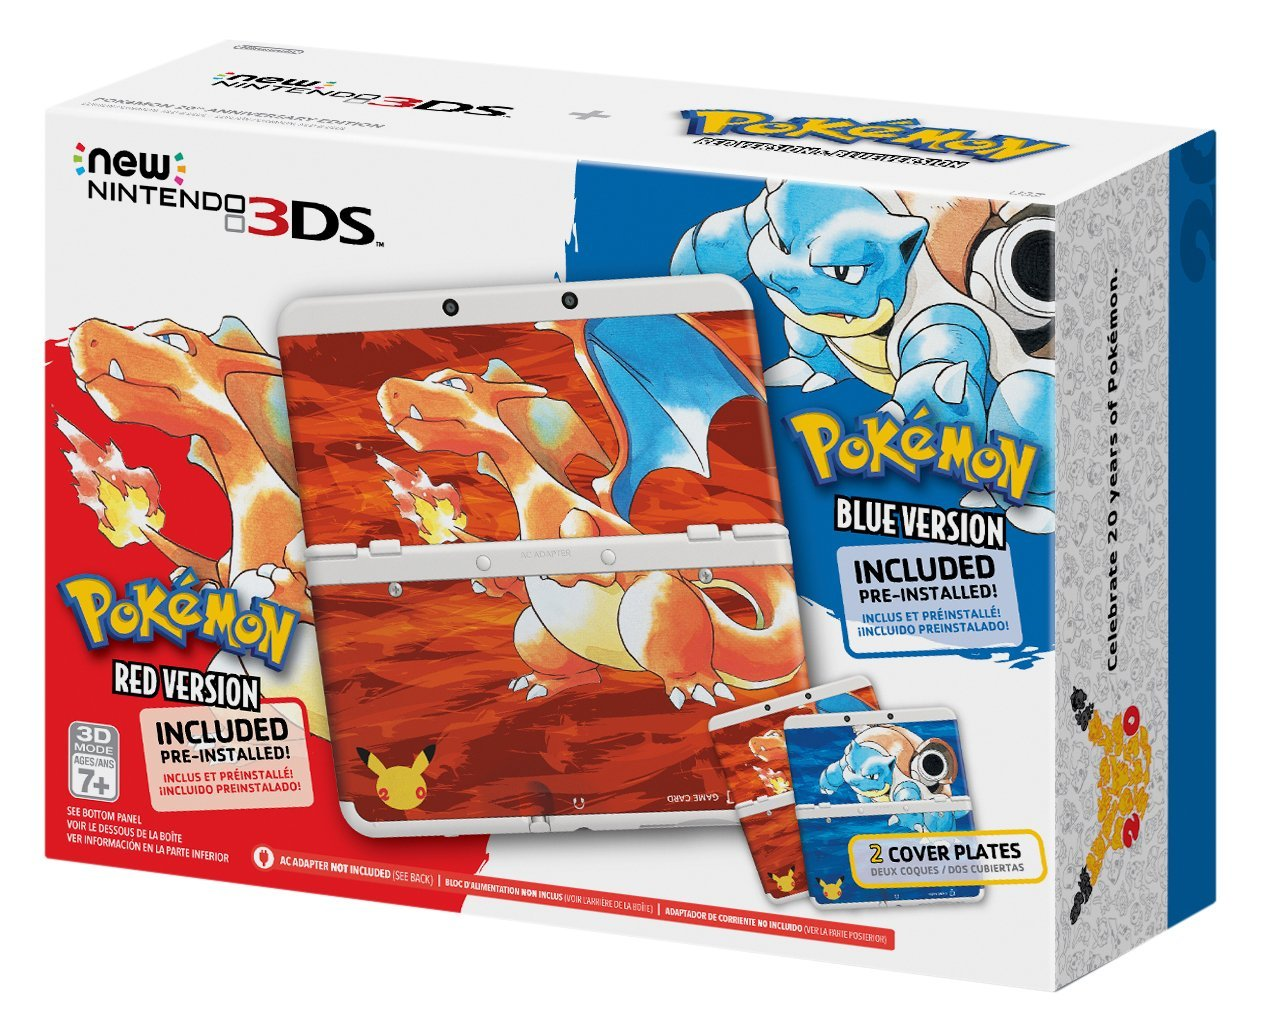 Pokemon 20th Anniversary New 3DS RedBlue Bundle Images Surface Online